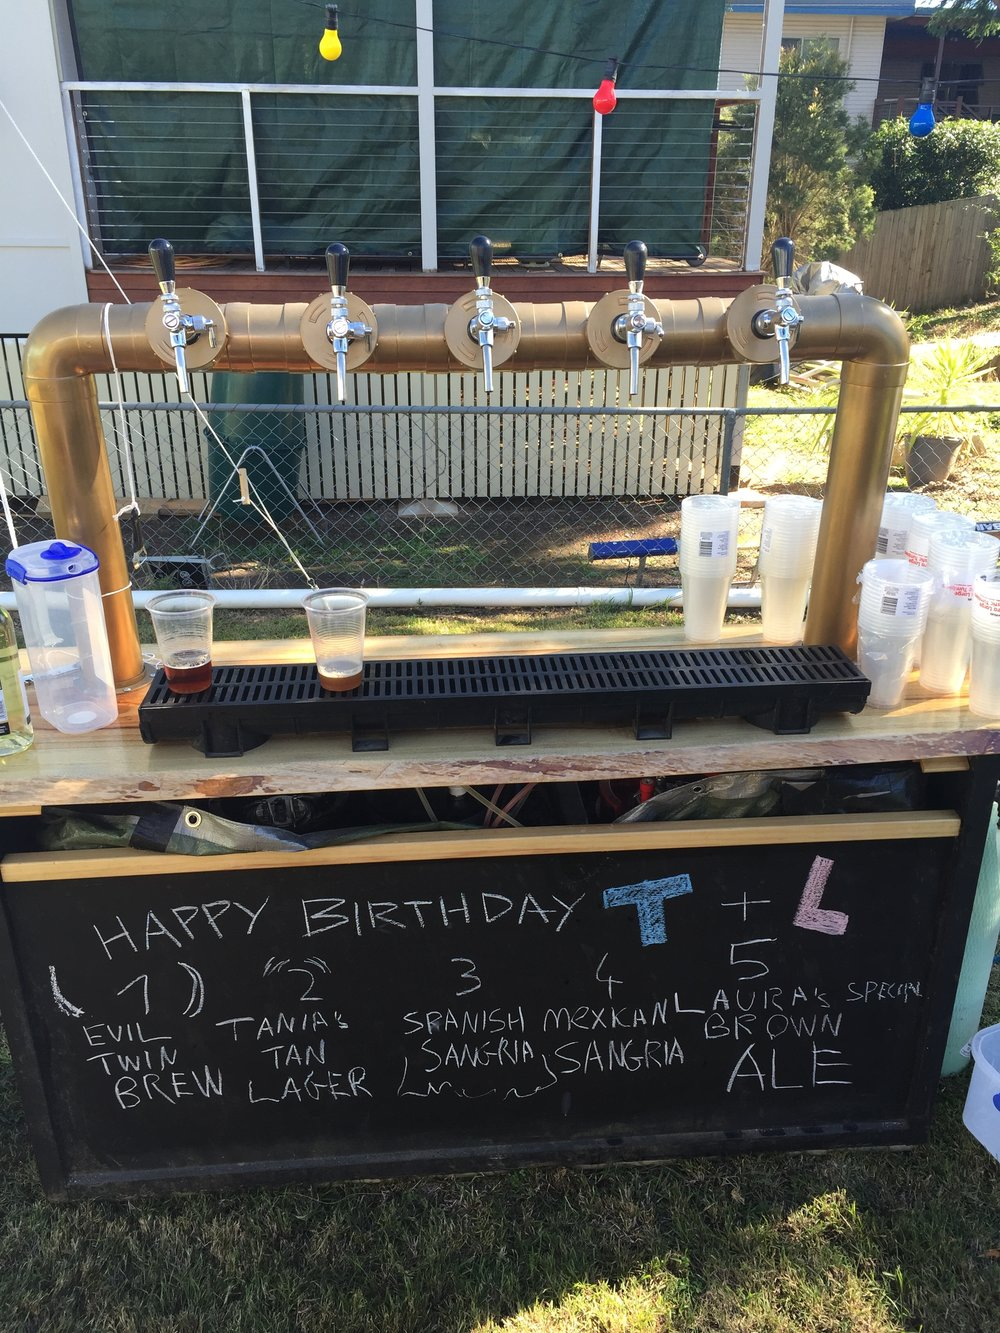 Robert makes his own beer and I love how he themed it all to match the party!